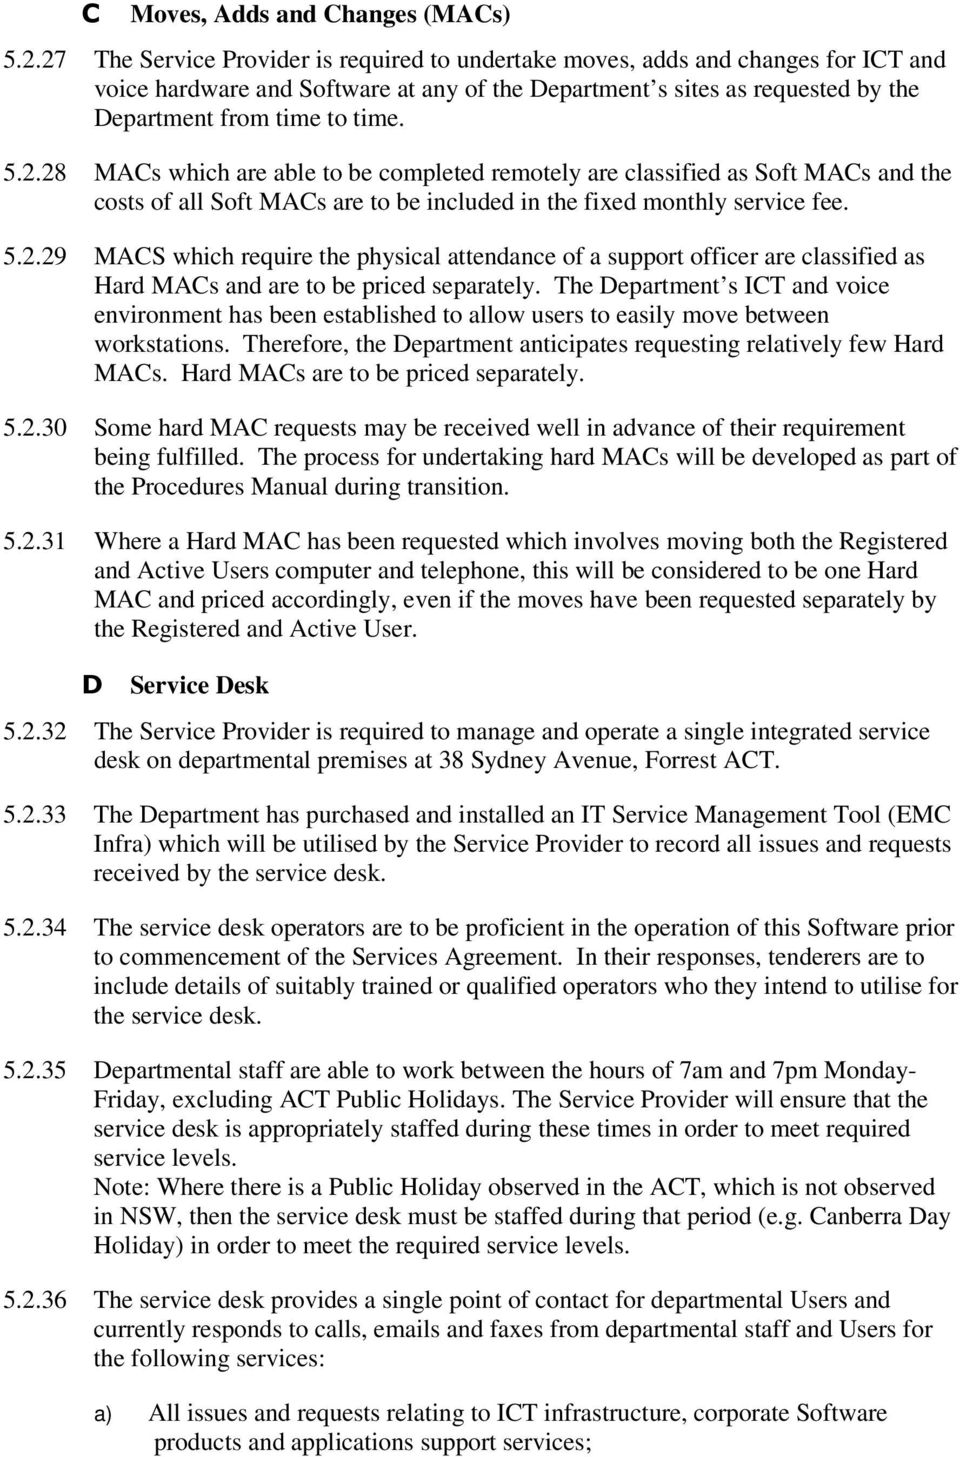 5.2.29 MACS which require the physical attendance of a support officer are classified as Hard MACs and are to be priced separately.